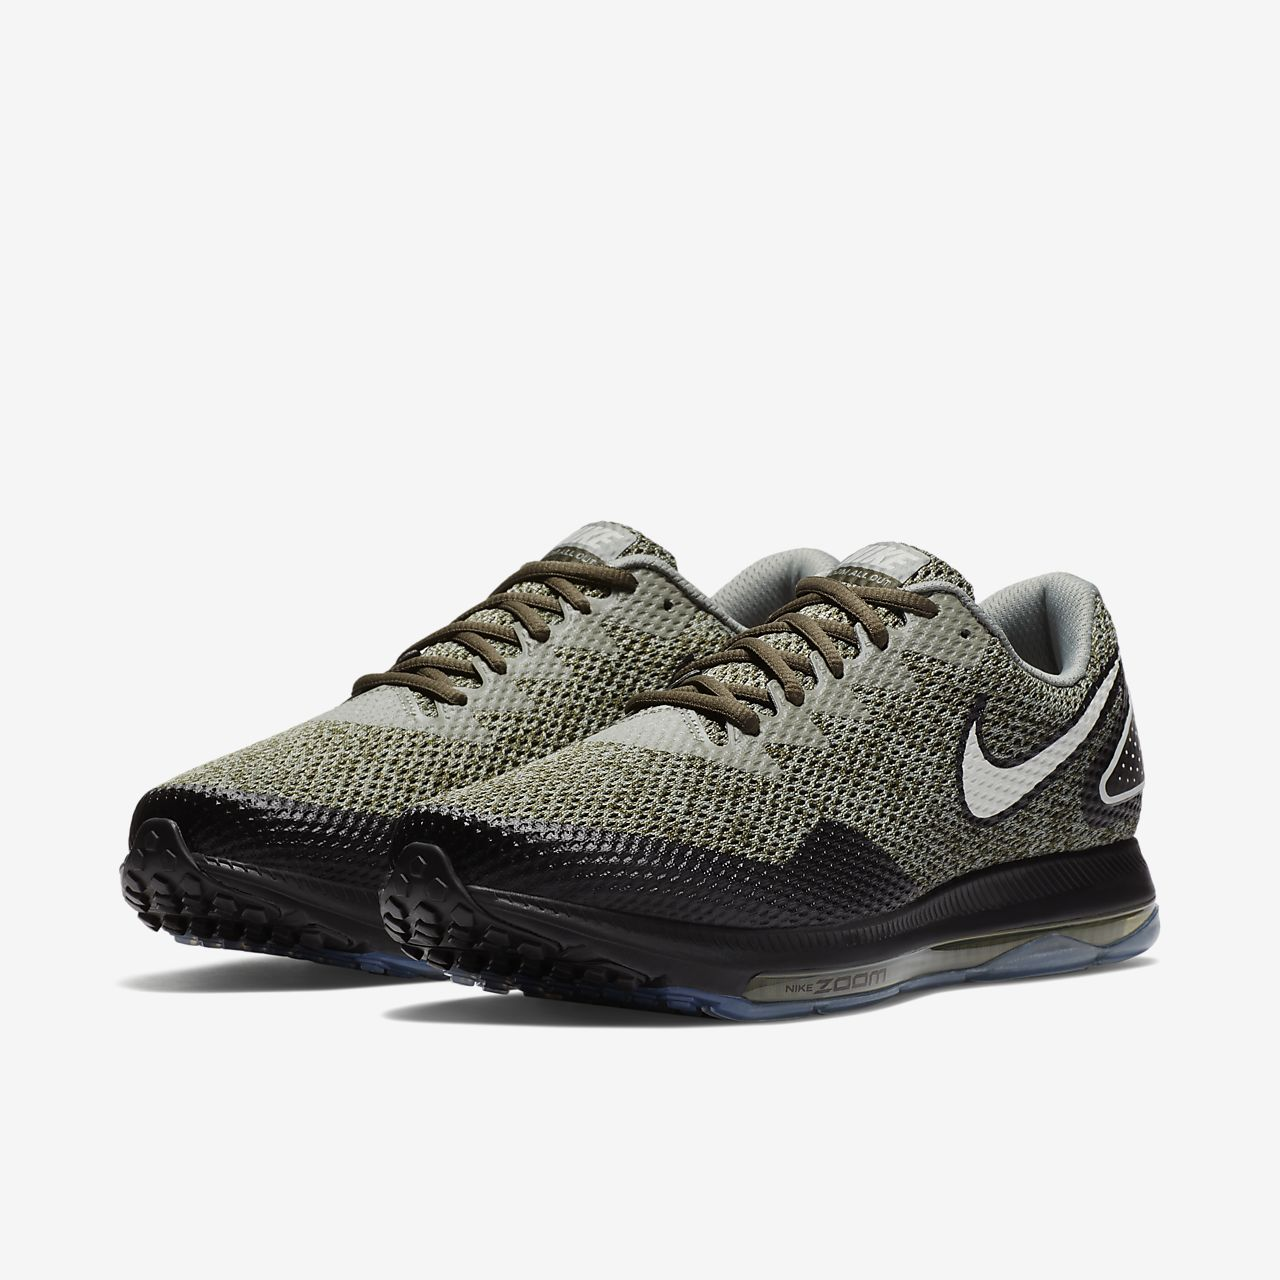 sale 2014 with credit card cheap price Nike Running Zoom All Out Low 2 Trainers In Khaki AJ0035-300 discount visit cT6d5tzsVA